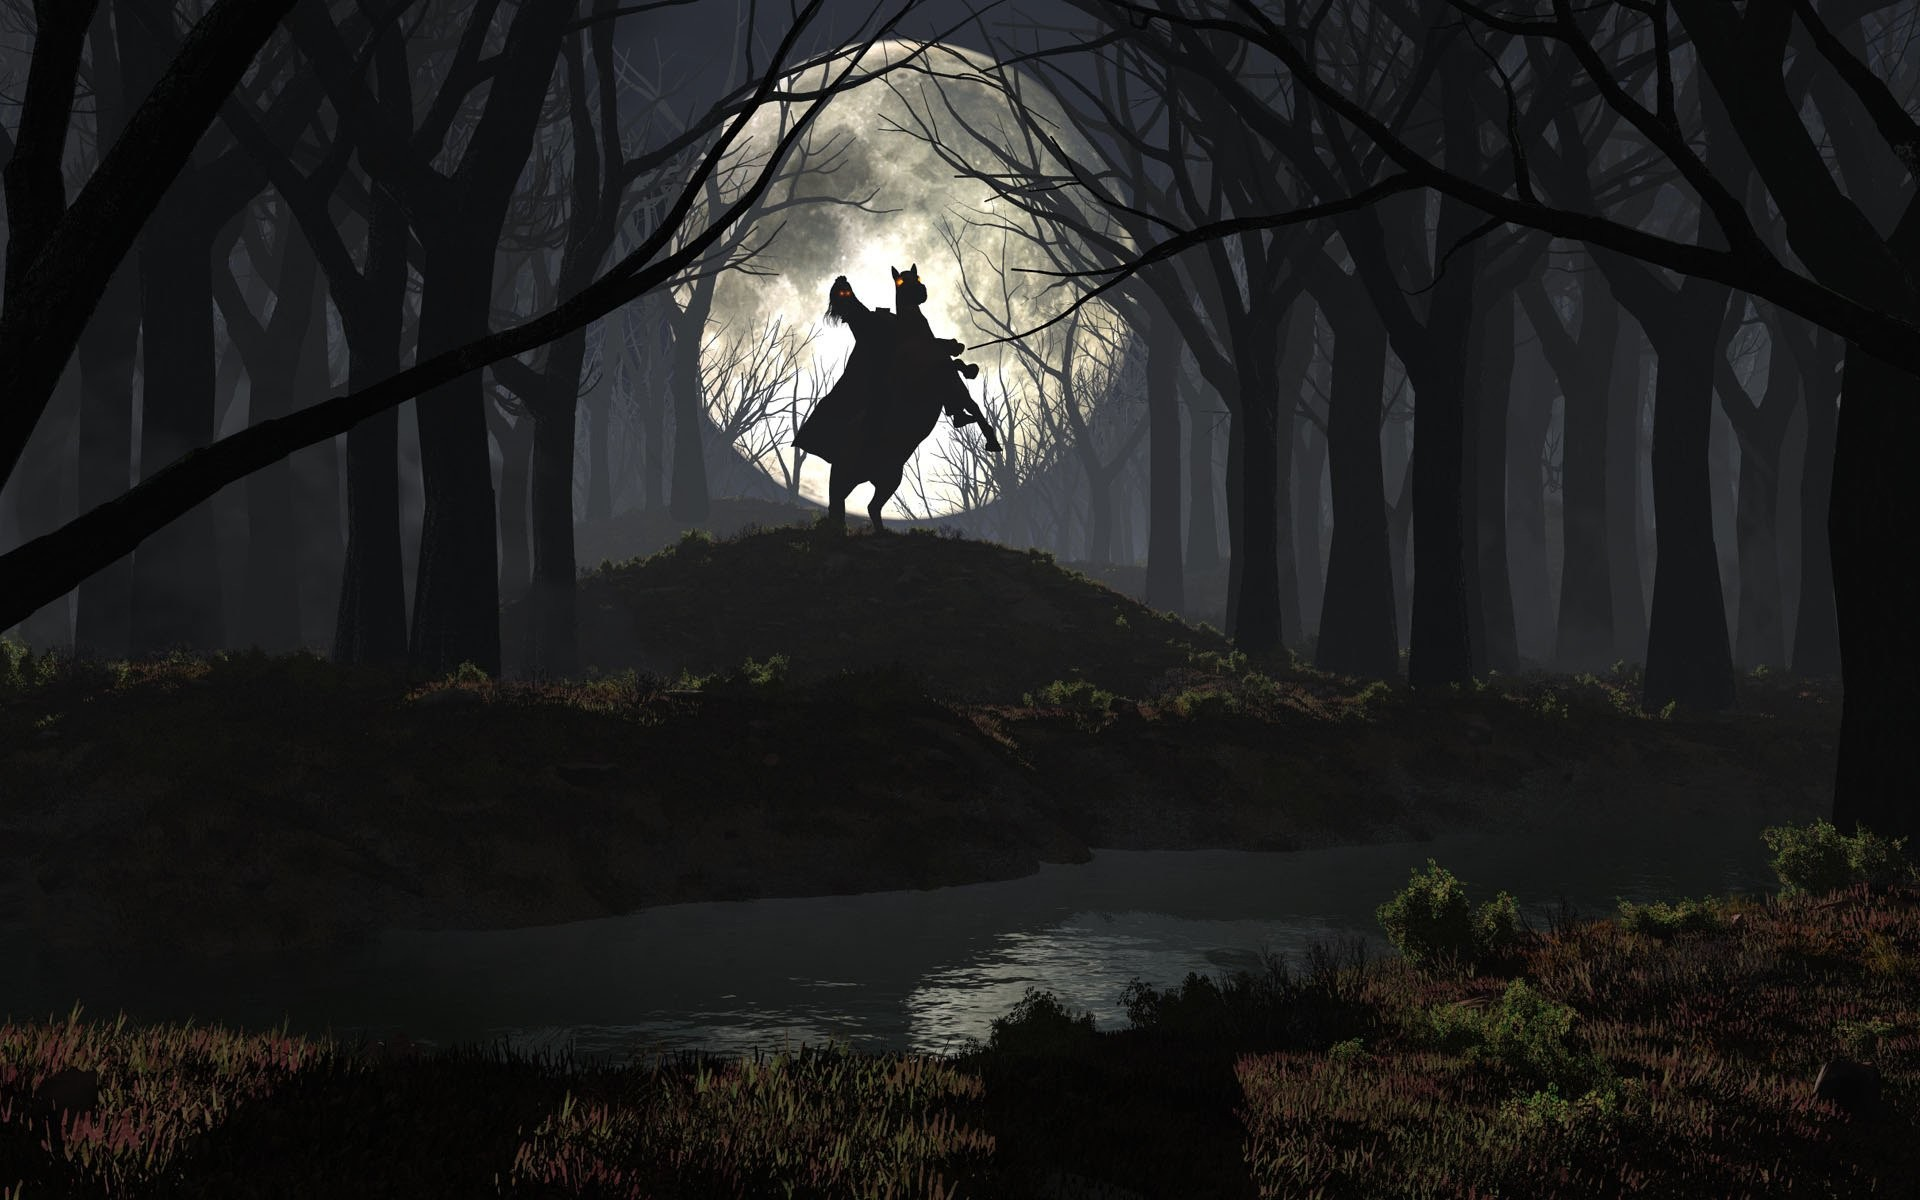 Rider In The Spooky Forest